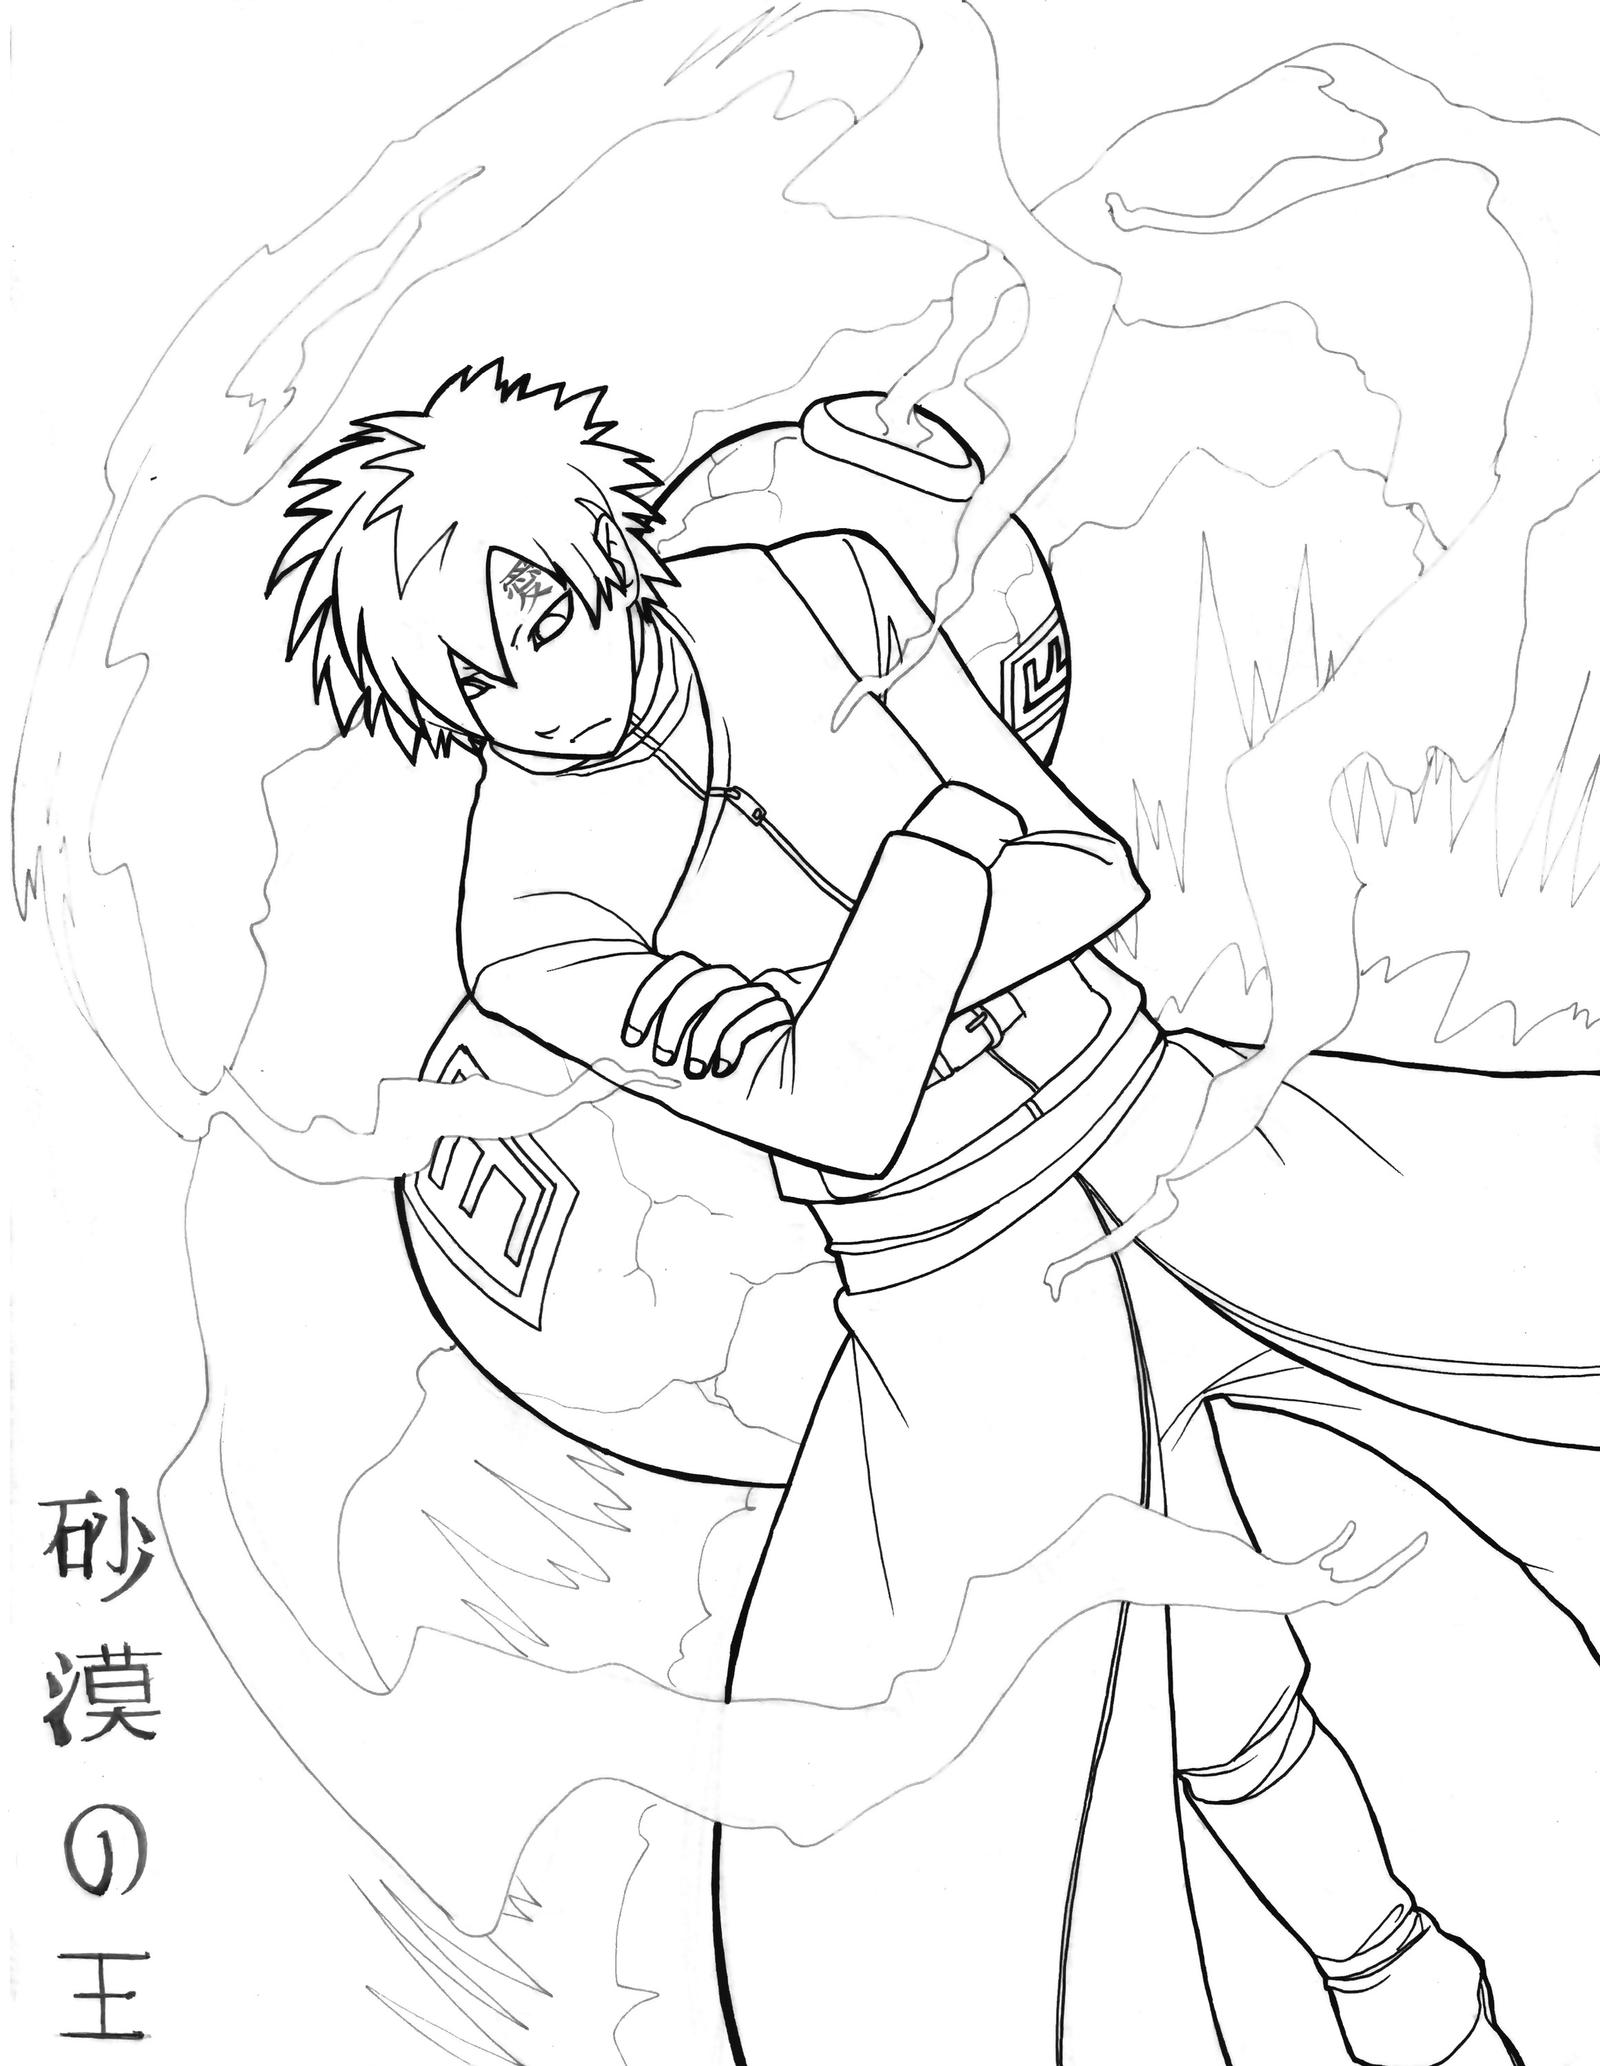 gaara coloring pages - photo#19